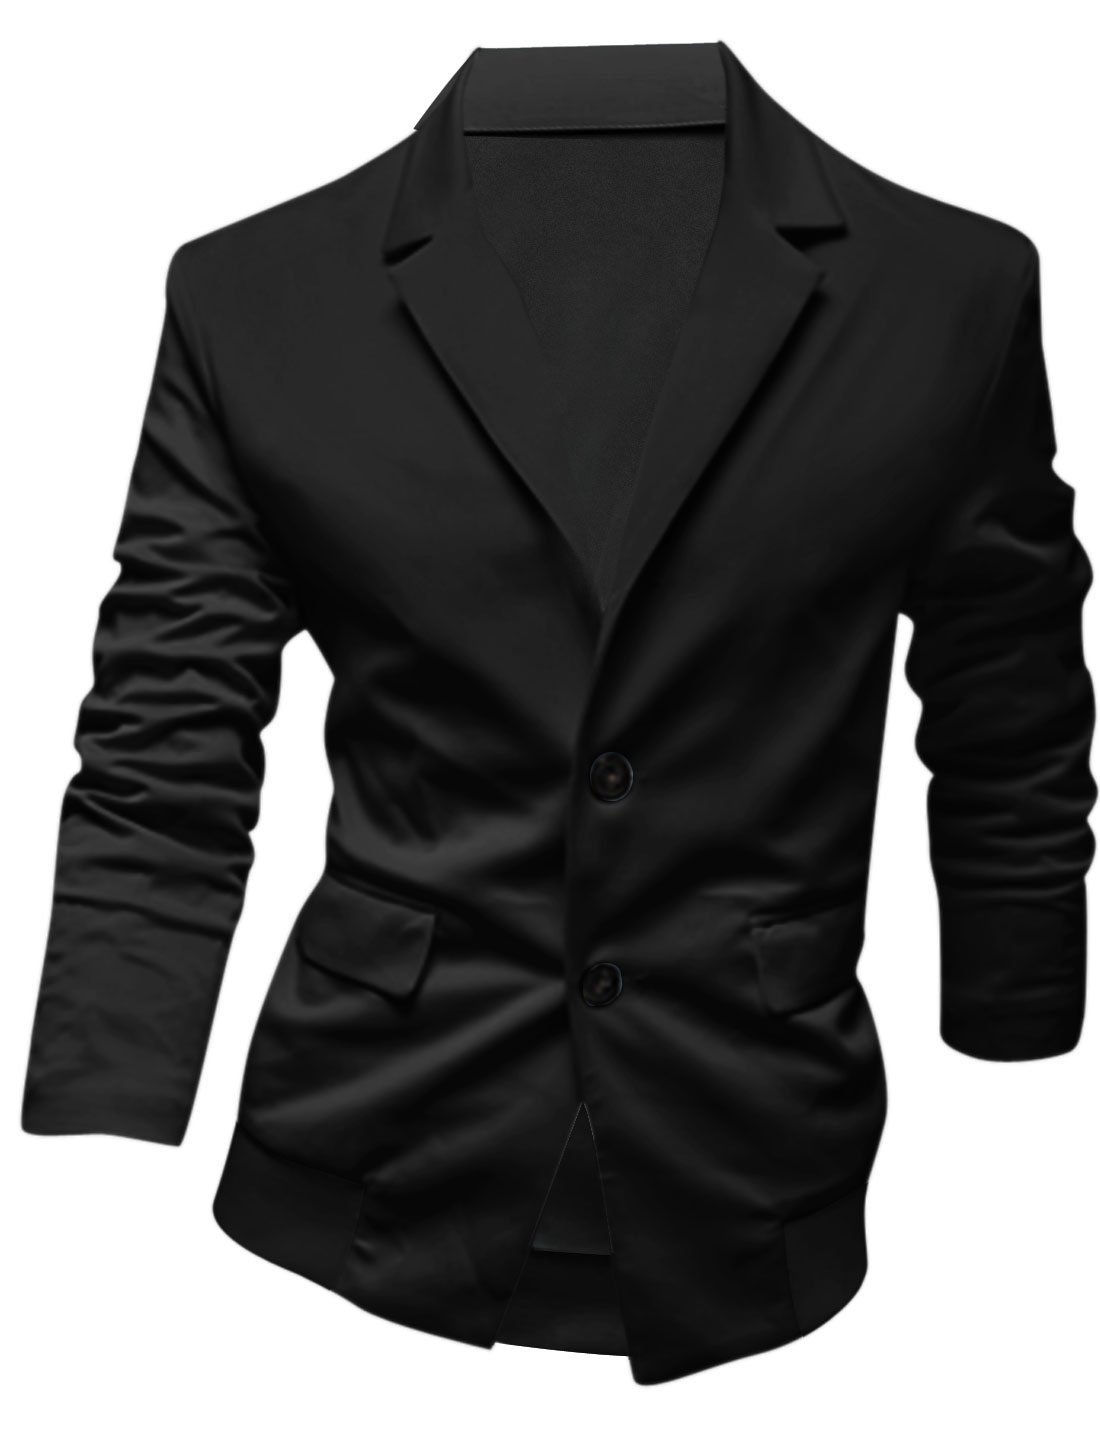 Men Notched Lapel Single Breasted Double Flap Pockets Jacket Black M